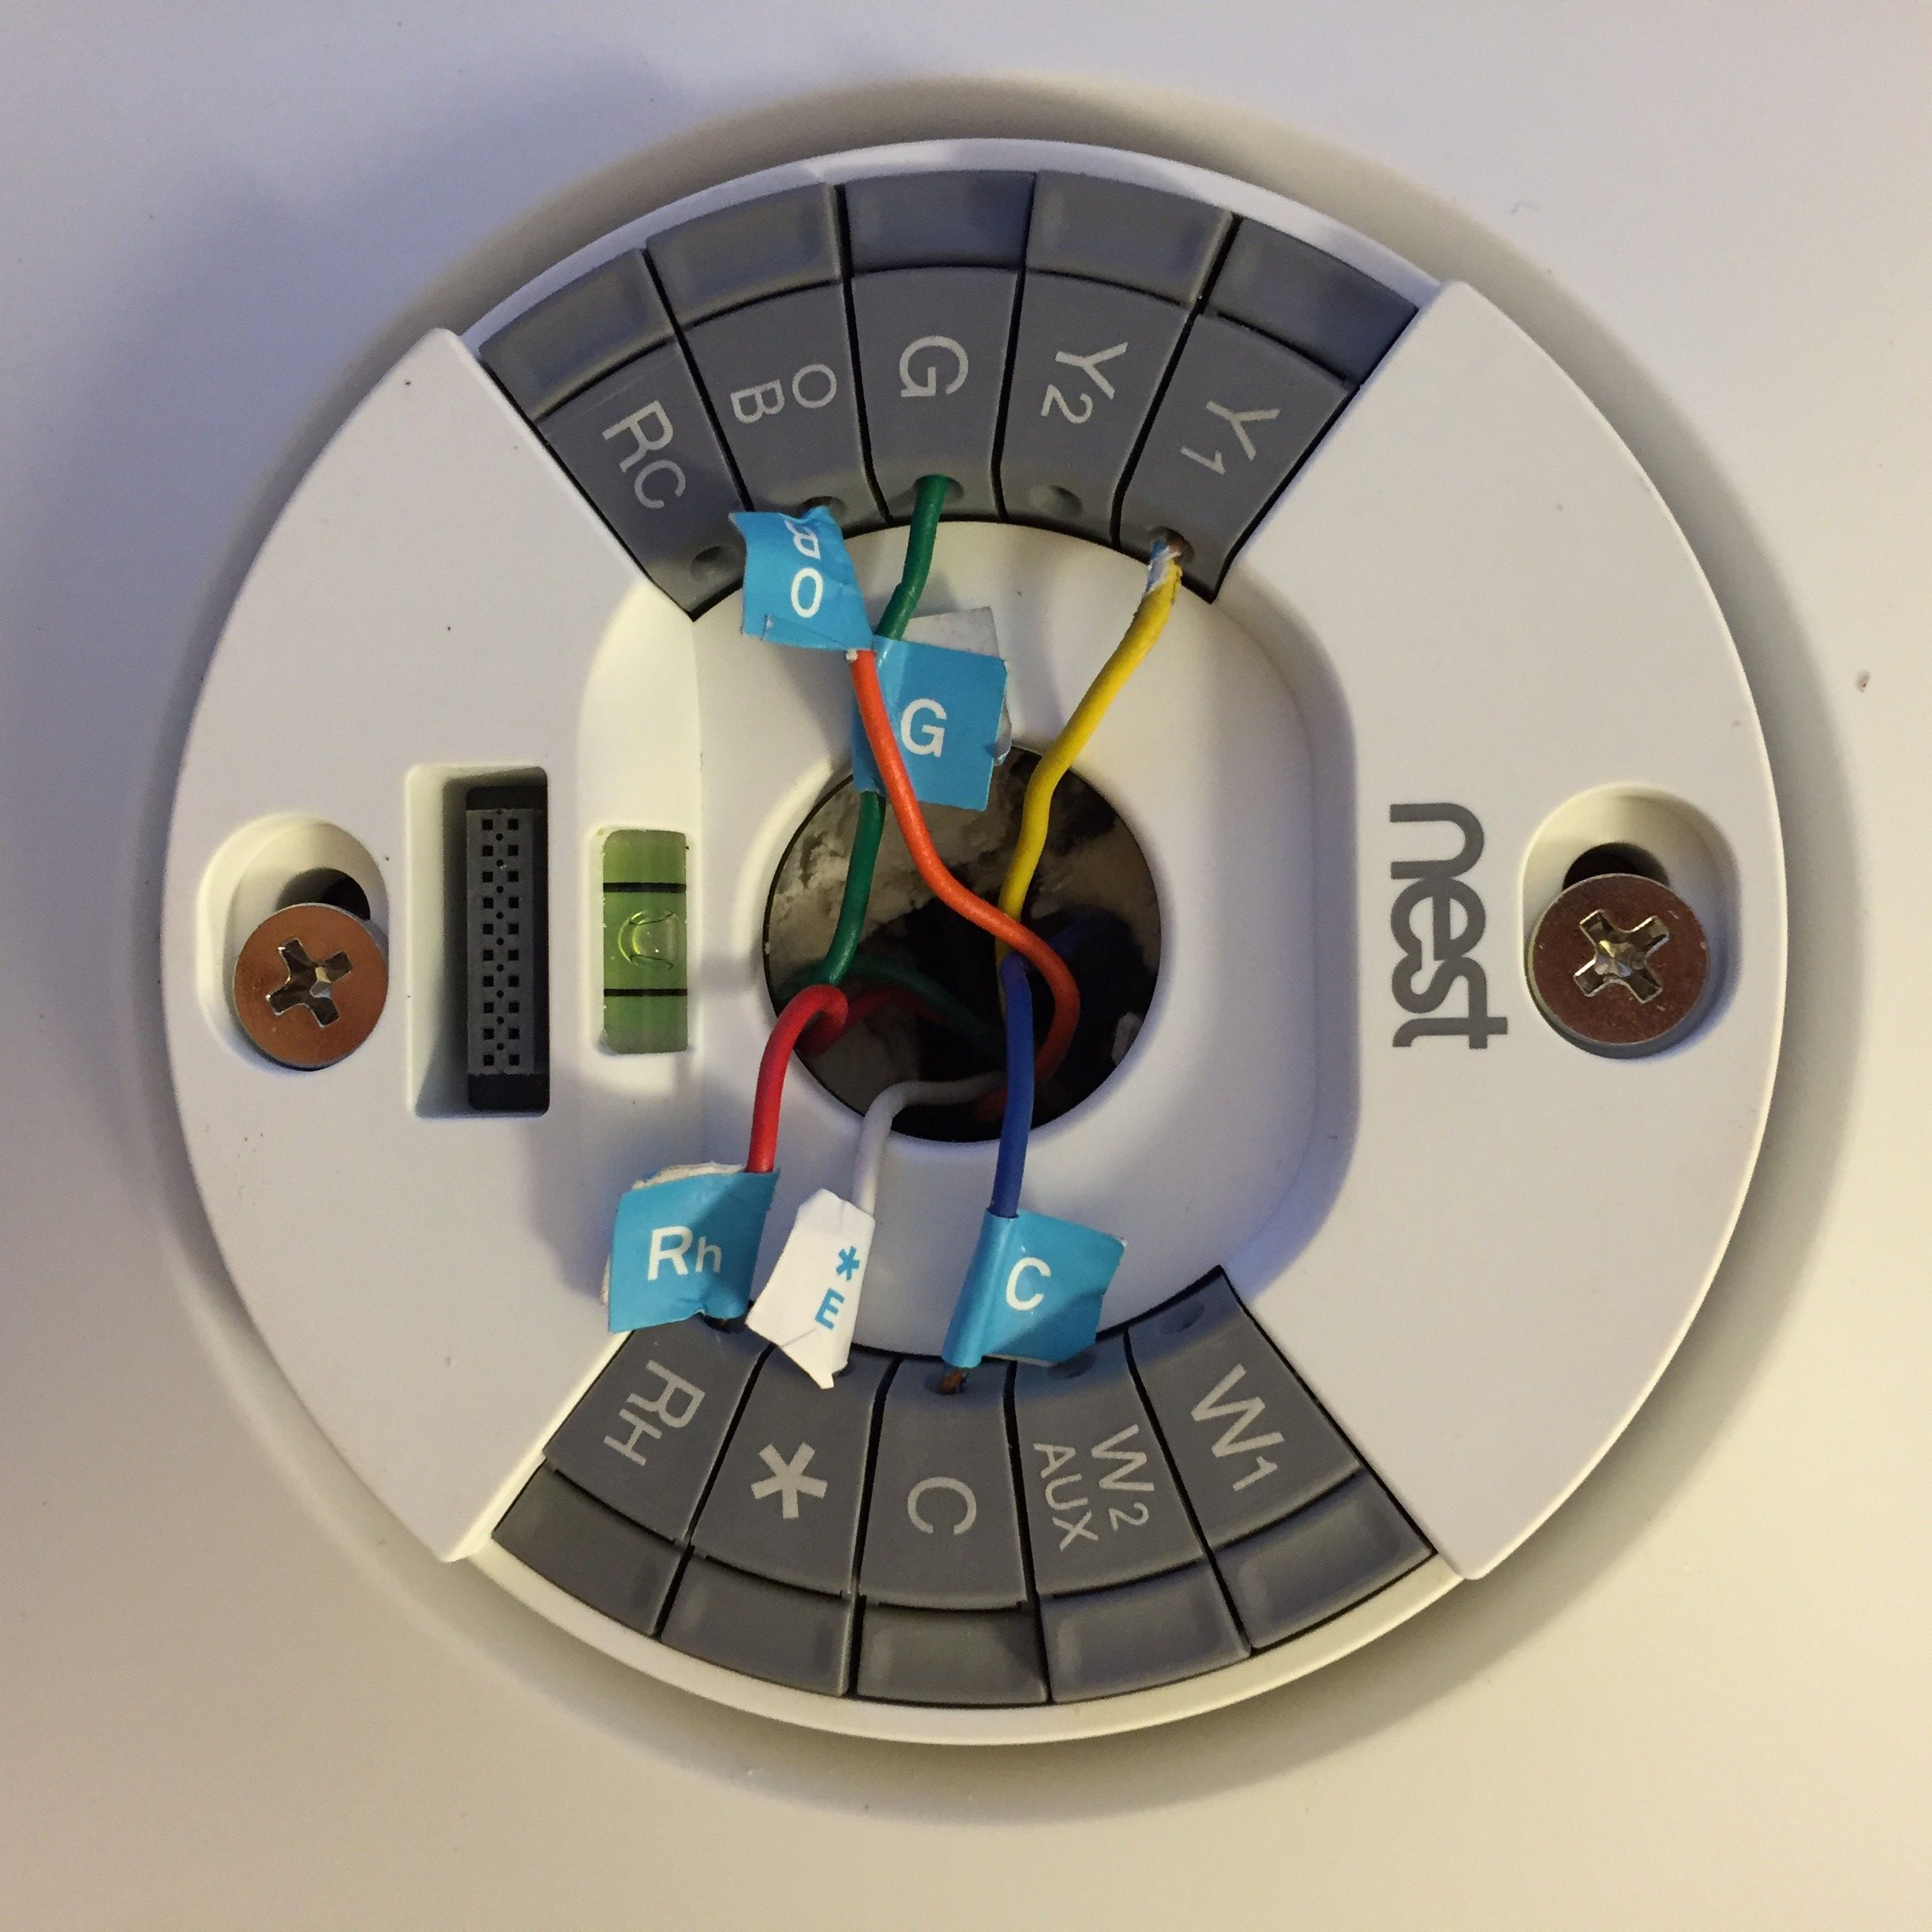 Wiring Diagram For A Nest Thermostat Auto Electrical Power Relay With Plate 28 Images